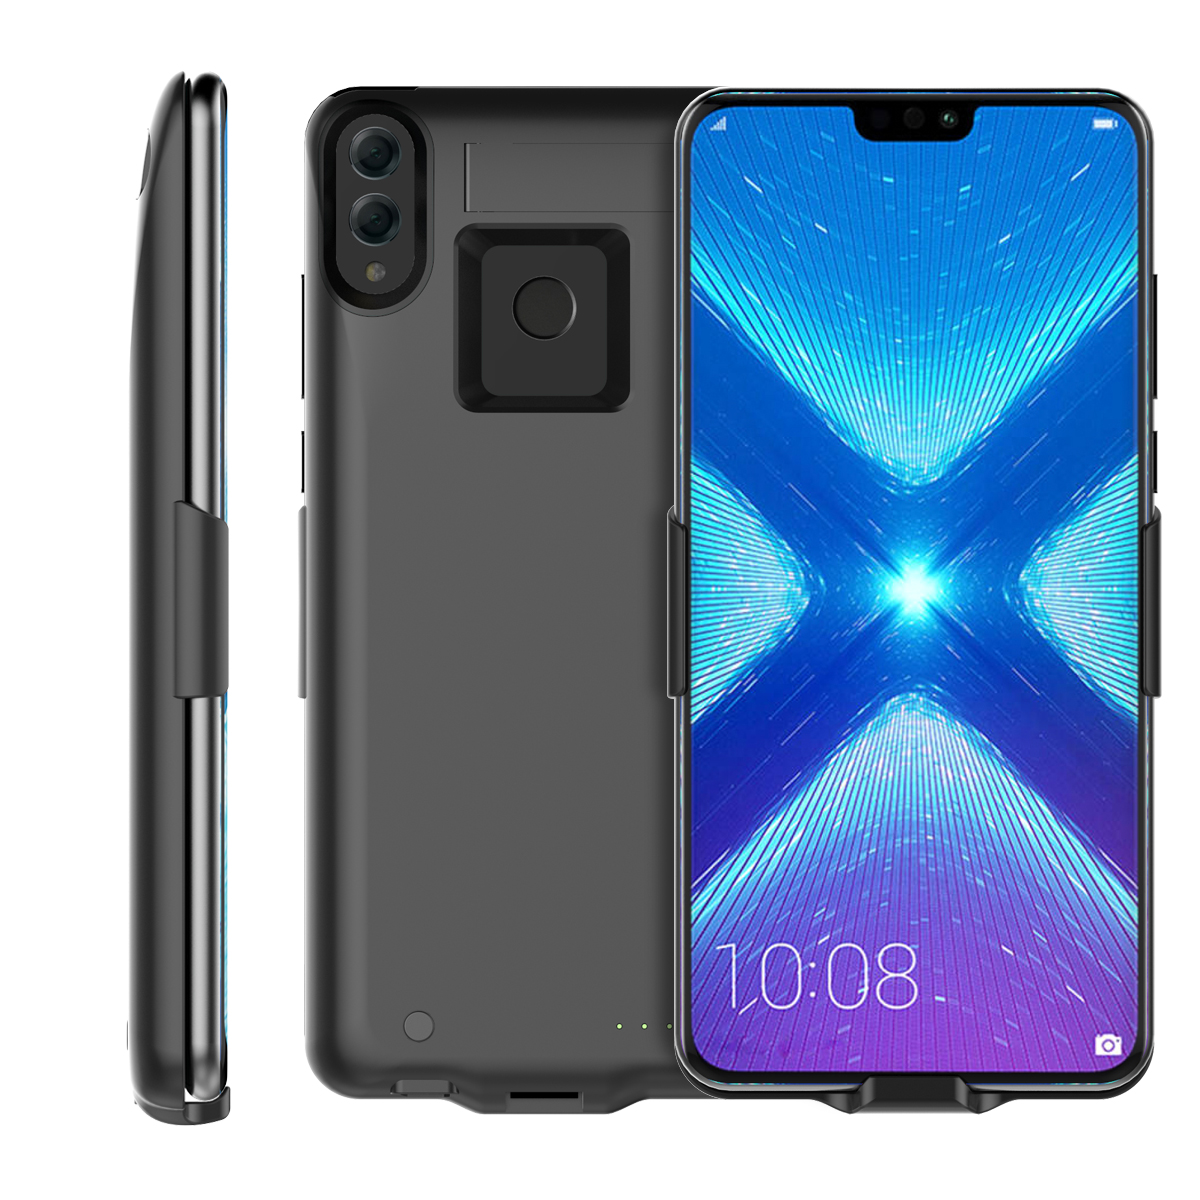 For Huawei Honor 8X 6500mAh Battery Charger Case Extended Battery Backup Power Bank Cover For Honor 8X 8X Max Case Kickstand